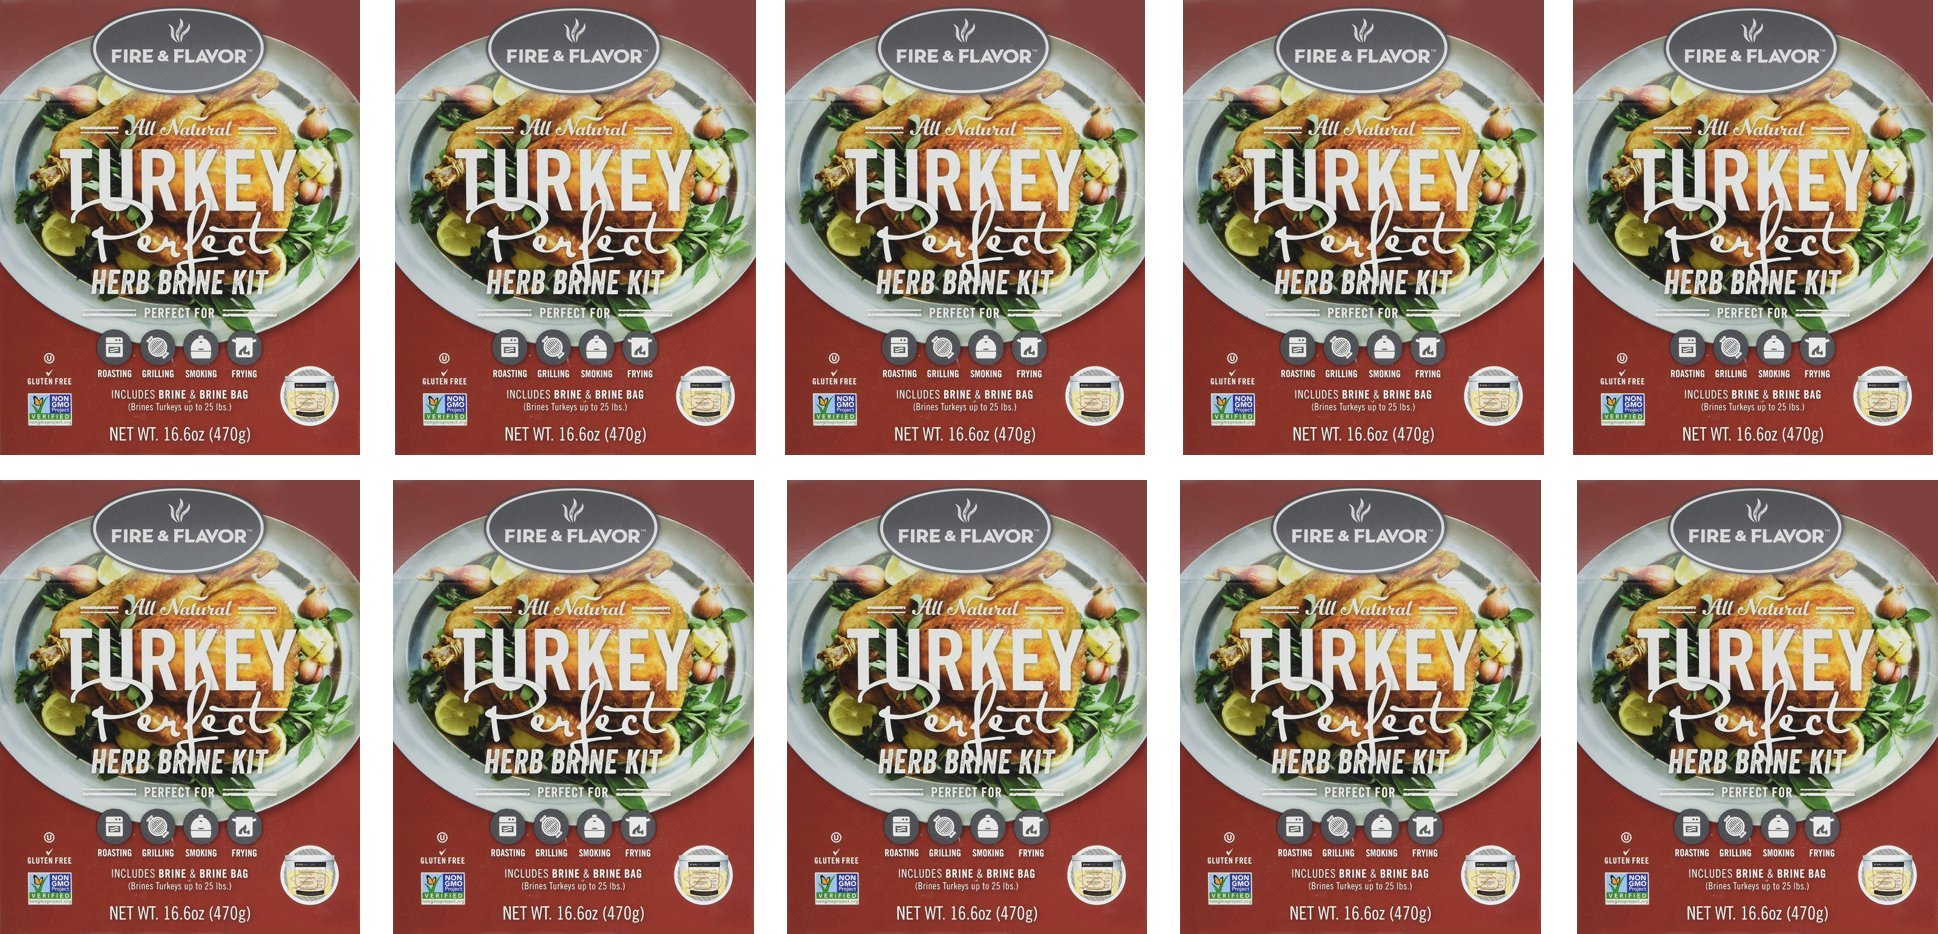 Fire & Flavor Turkey Perfect Herb Brining Kit - 10 Kit Super Value Pack! -16.6oz x 10 Kits - Each Kit Includes Brining Mix, Brining Bag, Recipes, and Instructions!